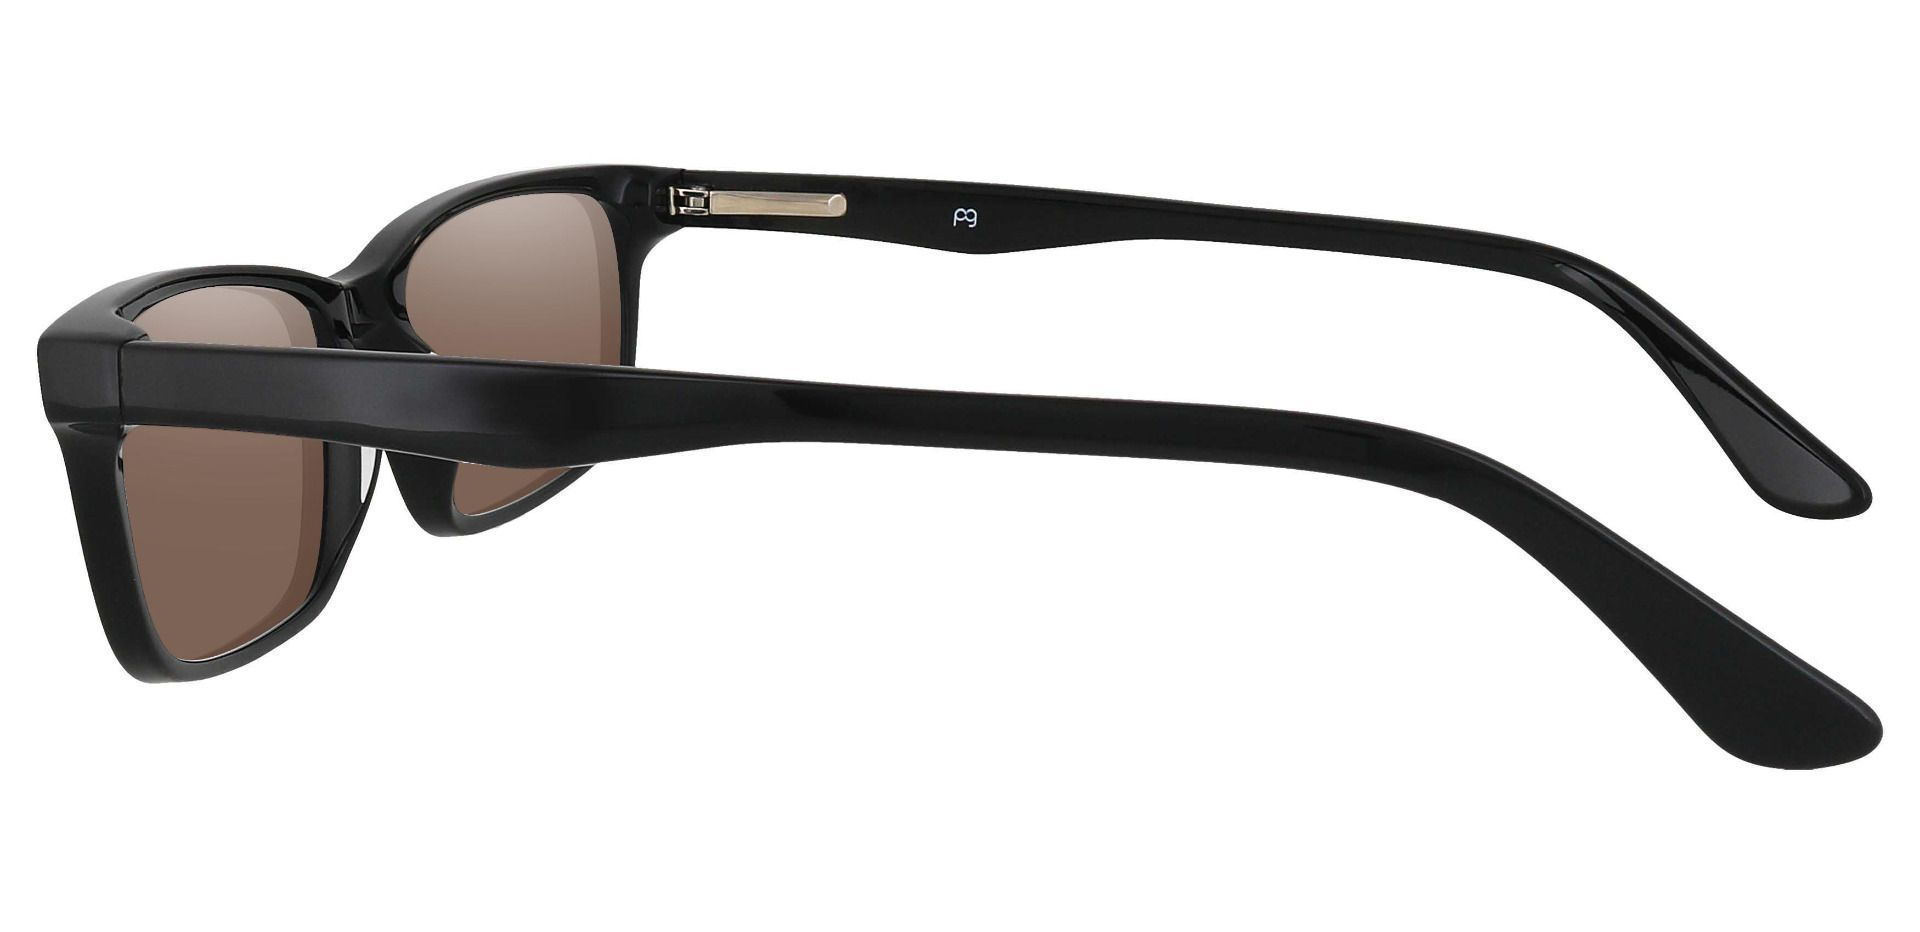 Hendrix Rectangle Non-Rx Sunglasses - Black Frame With Brown Lenses